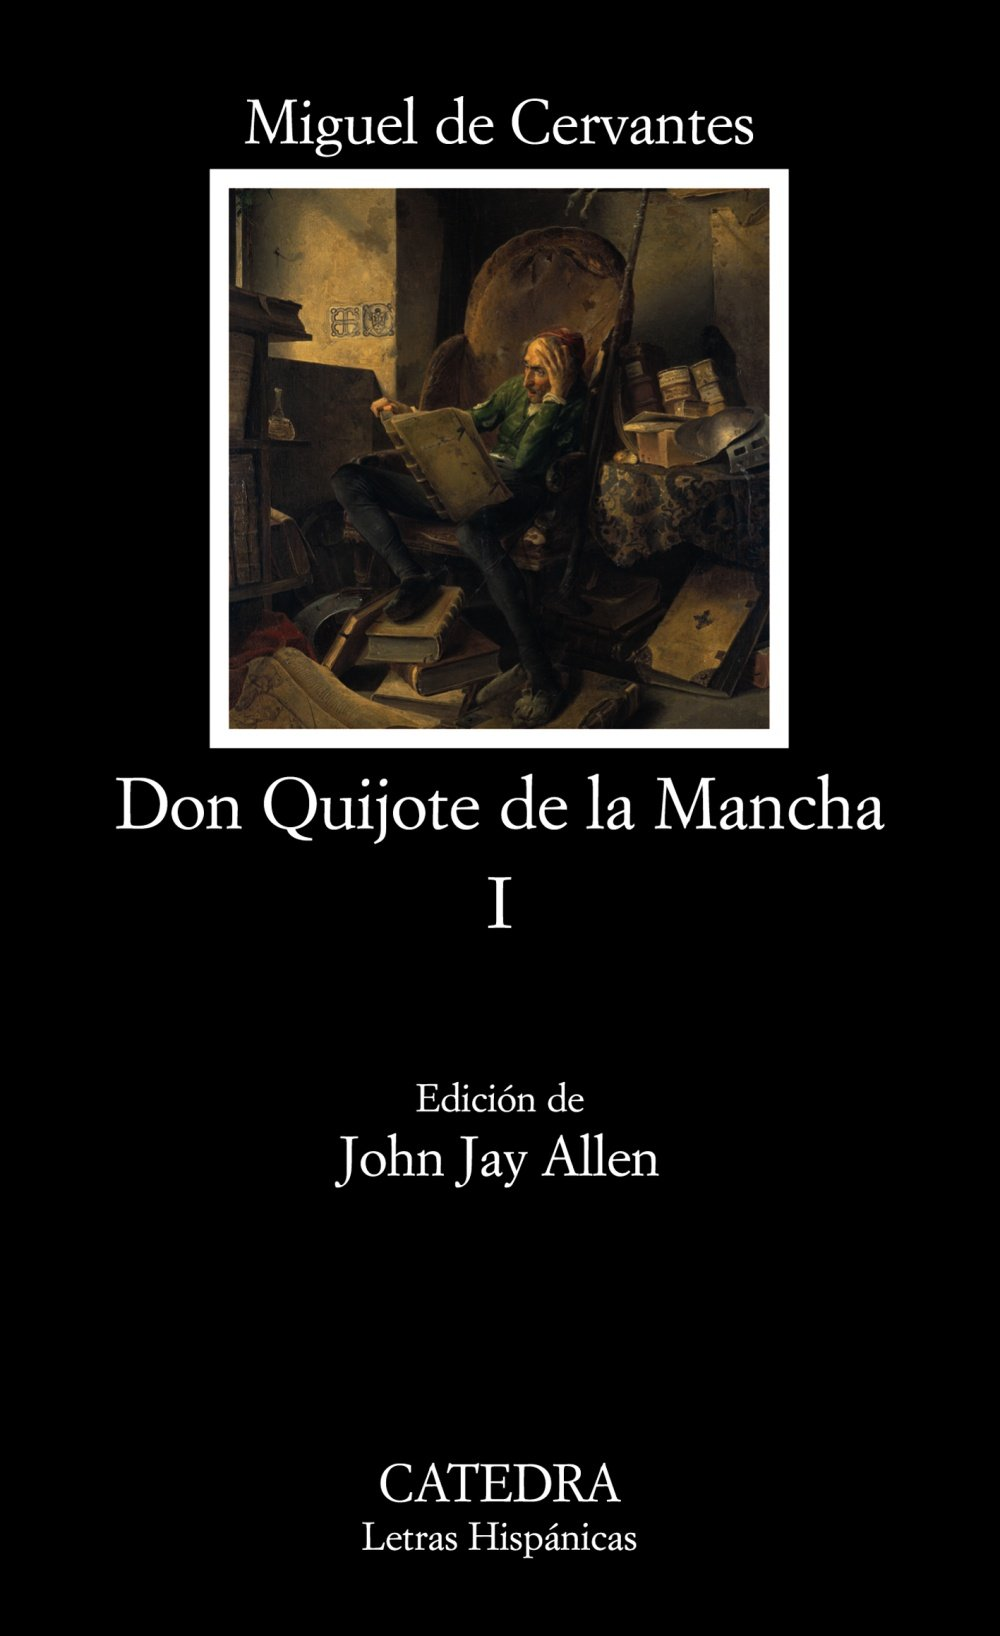 Download Don Quijote de la Mancha, I (COLECCION LETRAS HISPANICAS) (v. 1) (Spanish Edition) PDF